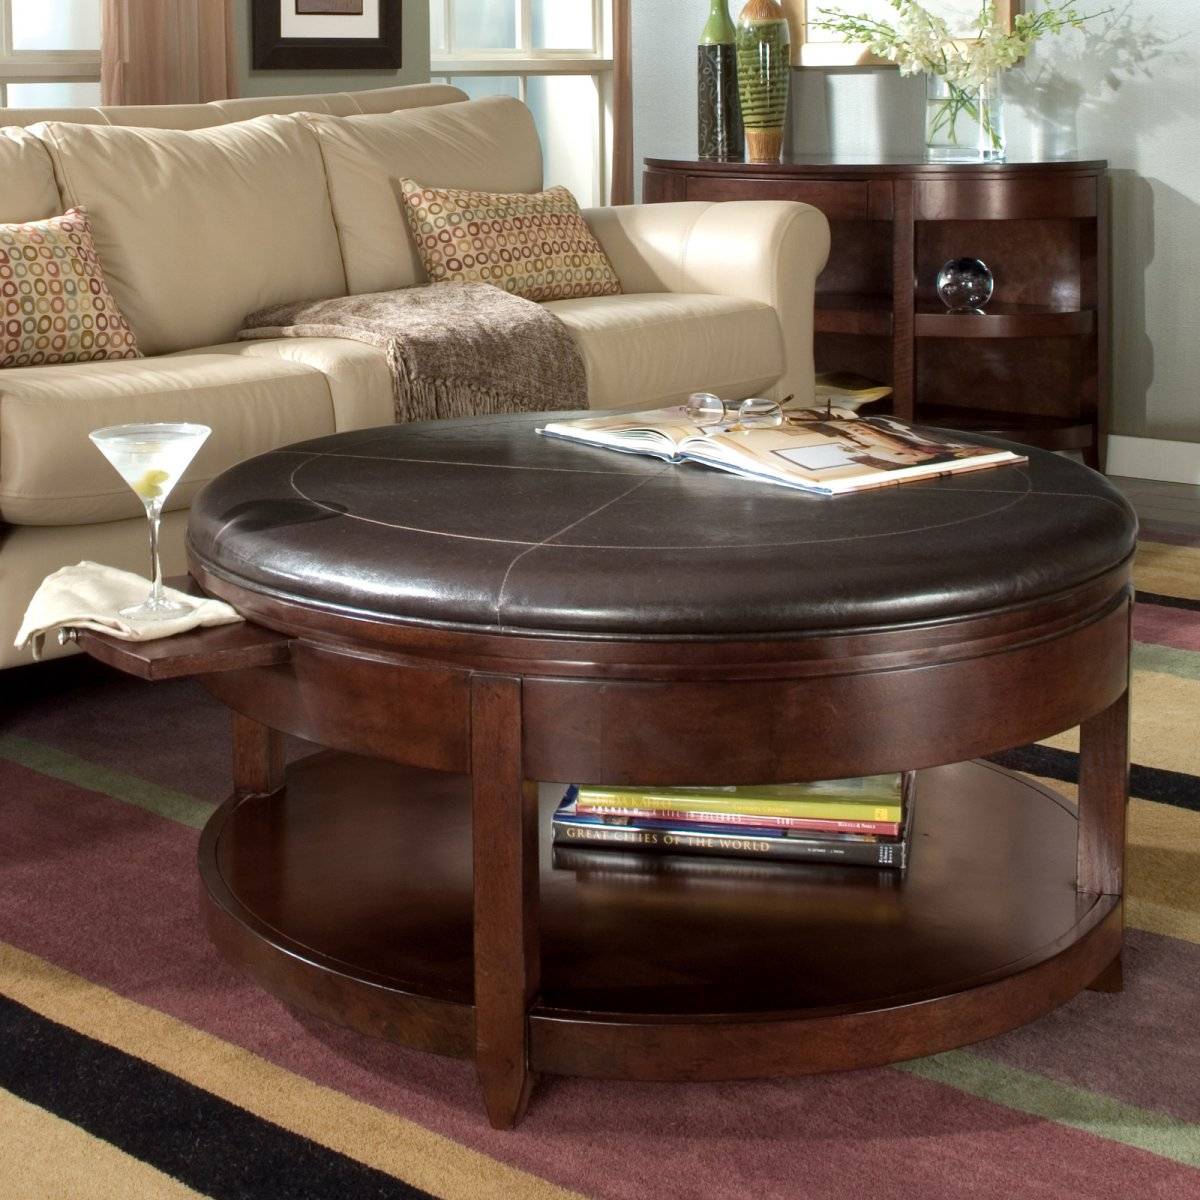 Round Coffee Table With Storage Round Coffee Tables With Storage Homesfeed